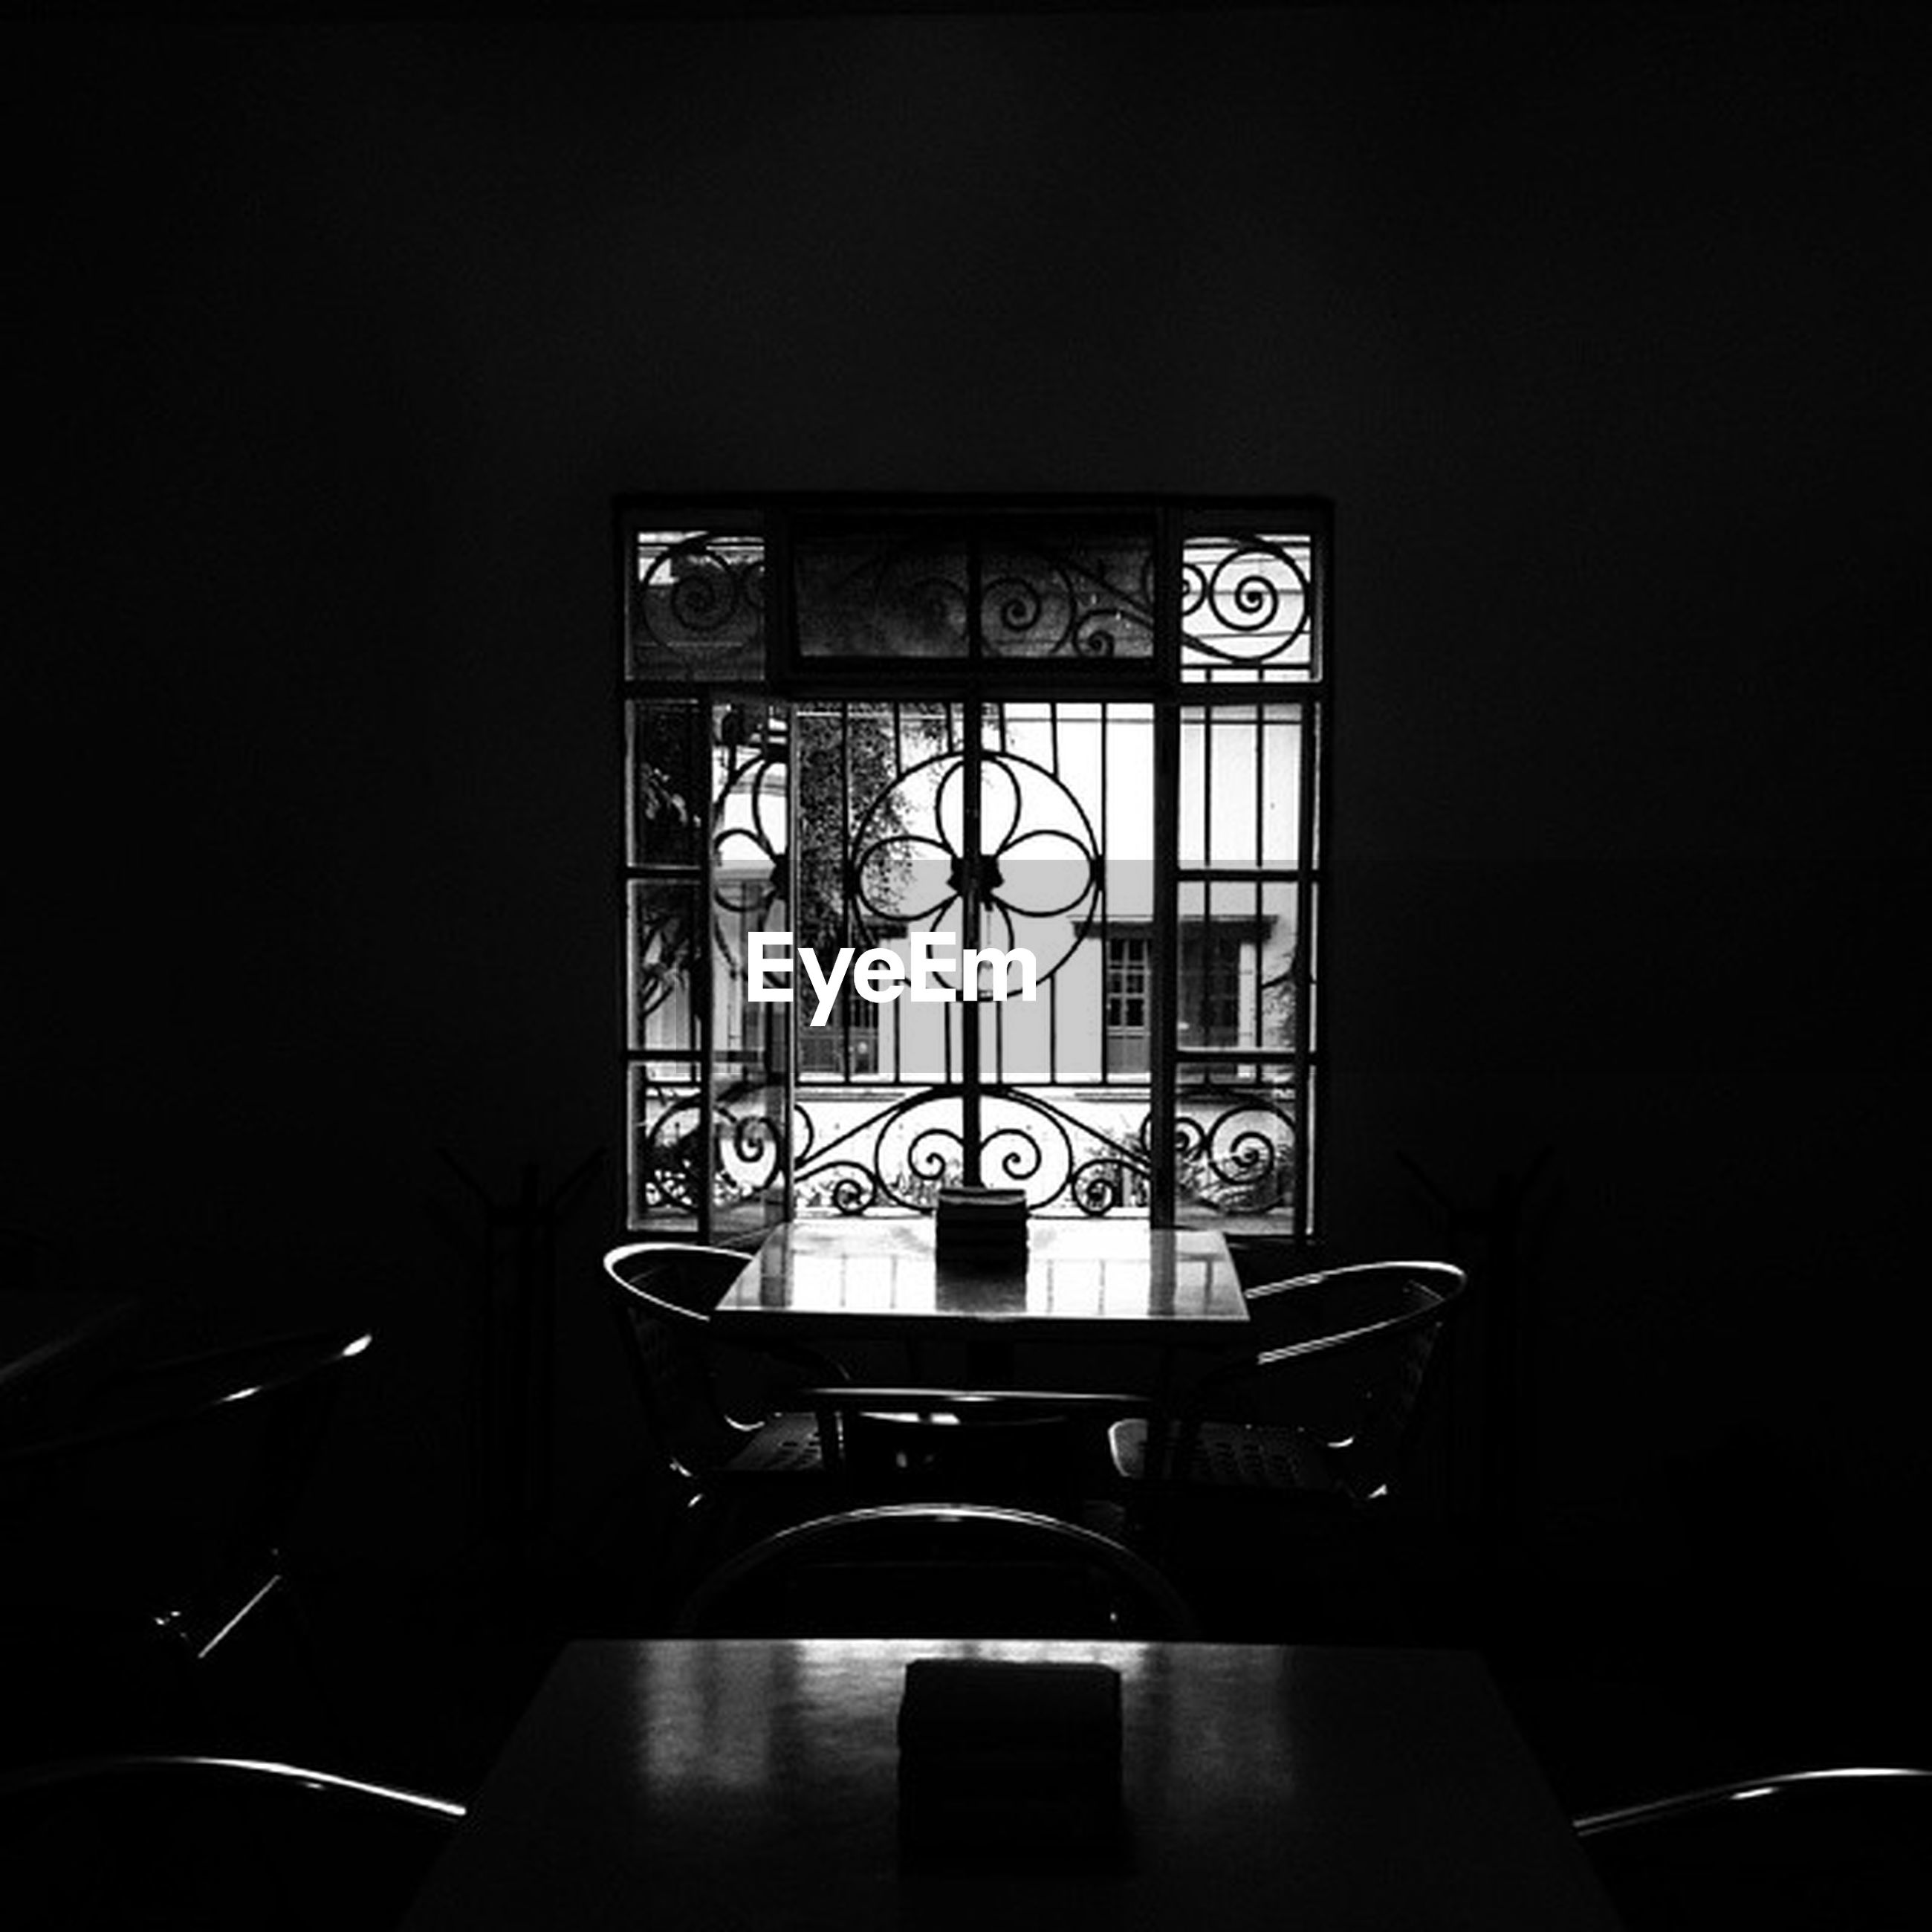 indoors, communication, window, text, western script, architecture, built structure, no people, glass - material, table, absence, copy space, illuminated, dark, empty, reflection, technology, clock, wall - building feature, day